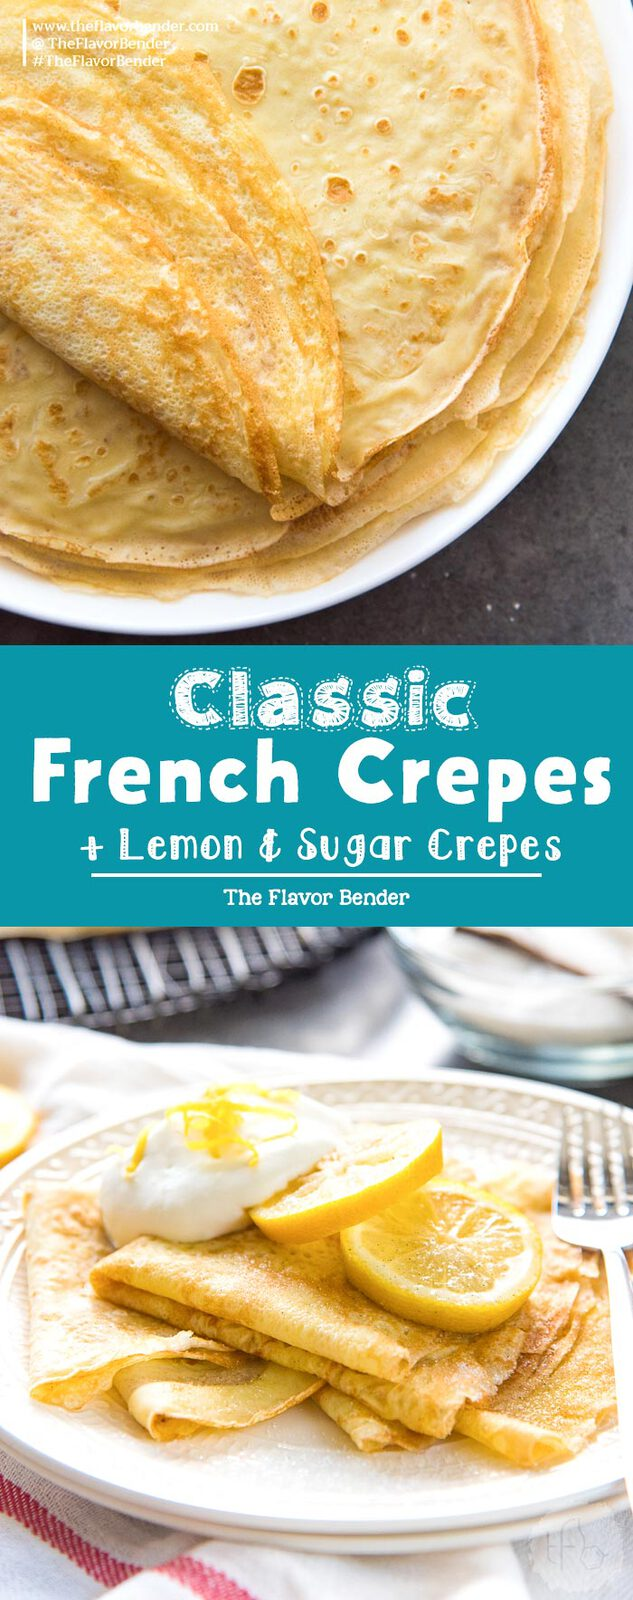 A complete guide on How to make Classic French Crepes (Basic Crepes). Soft, buttery, delicious, and infinitely versatile homemade crepes  are great as a sweet or savory option for breakfast, brunch, lunch, dinner or dessert.